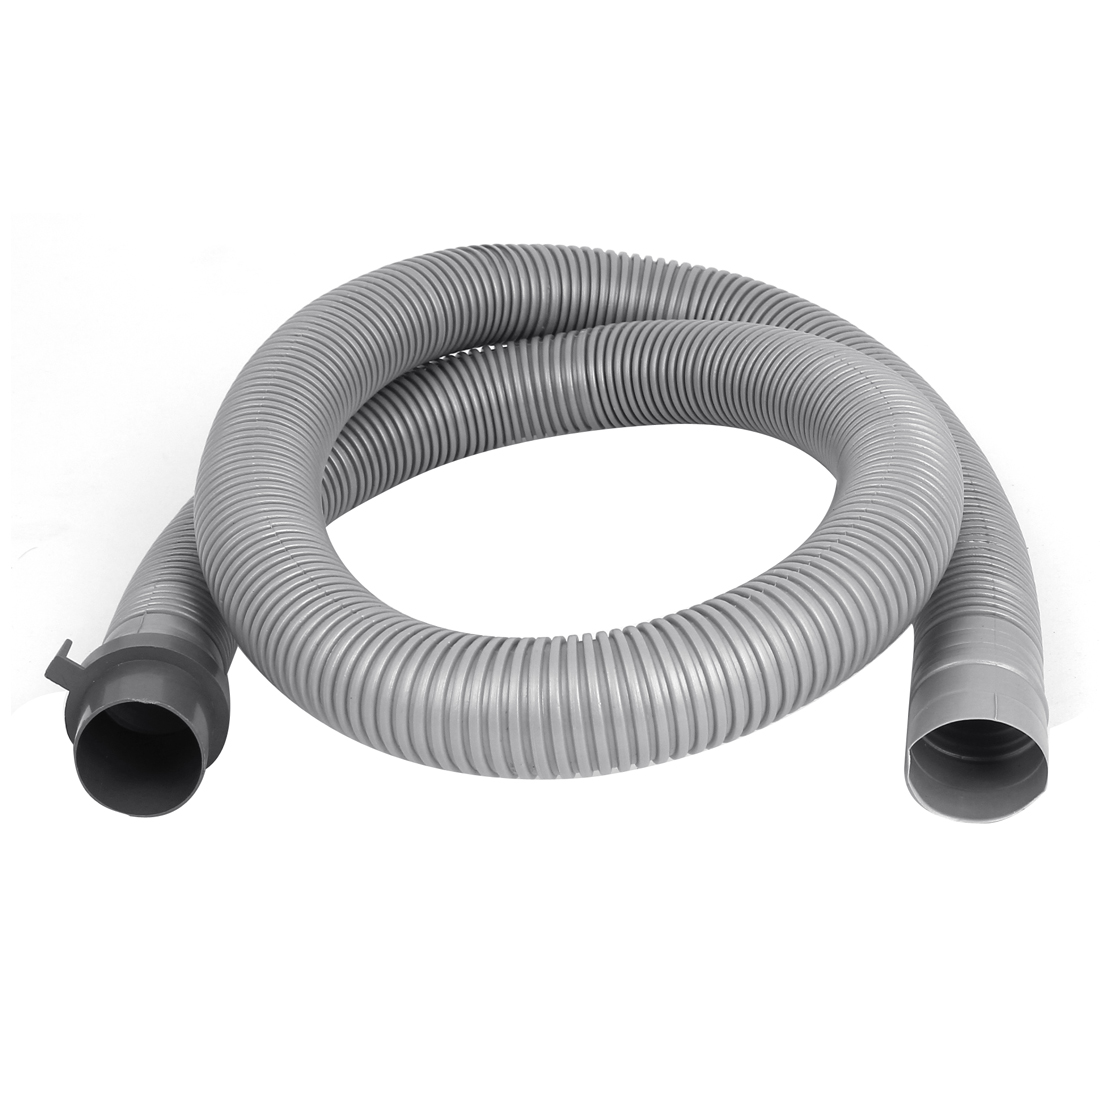 Plastic Washer Washing Machine Waste Water Drain Hose Pipe 4Ft Gray